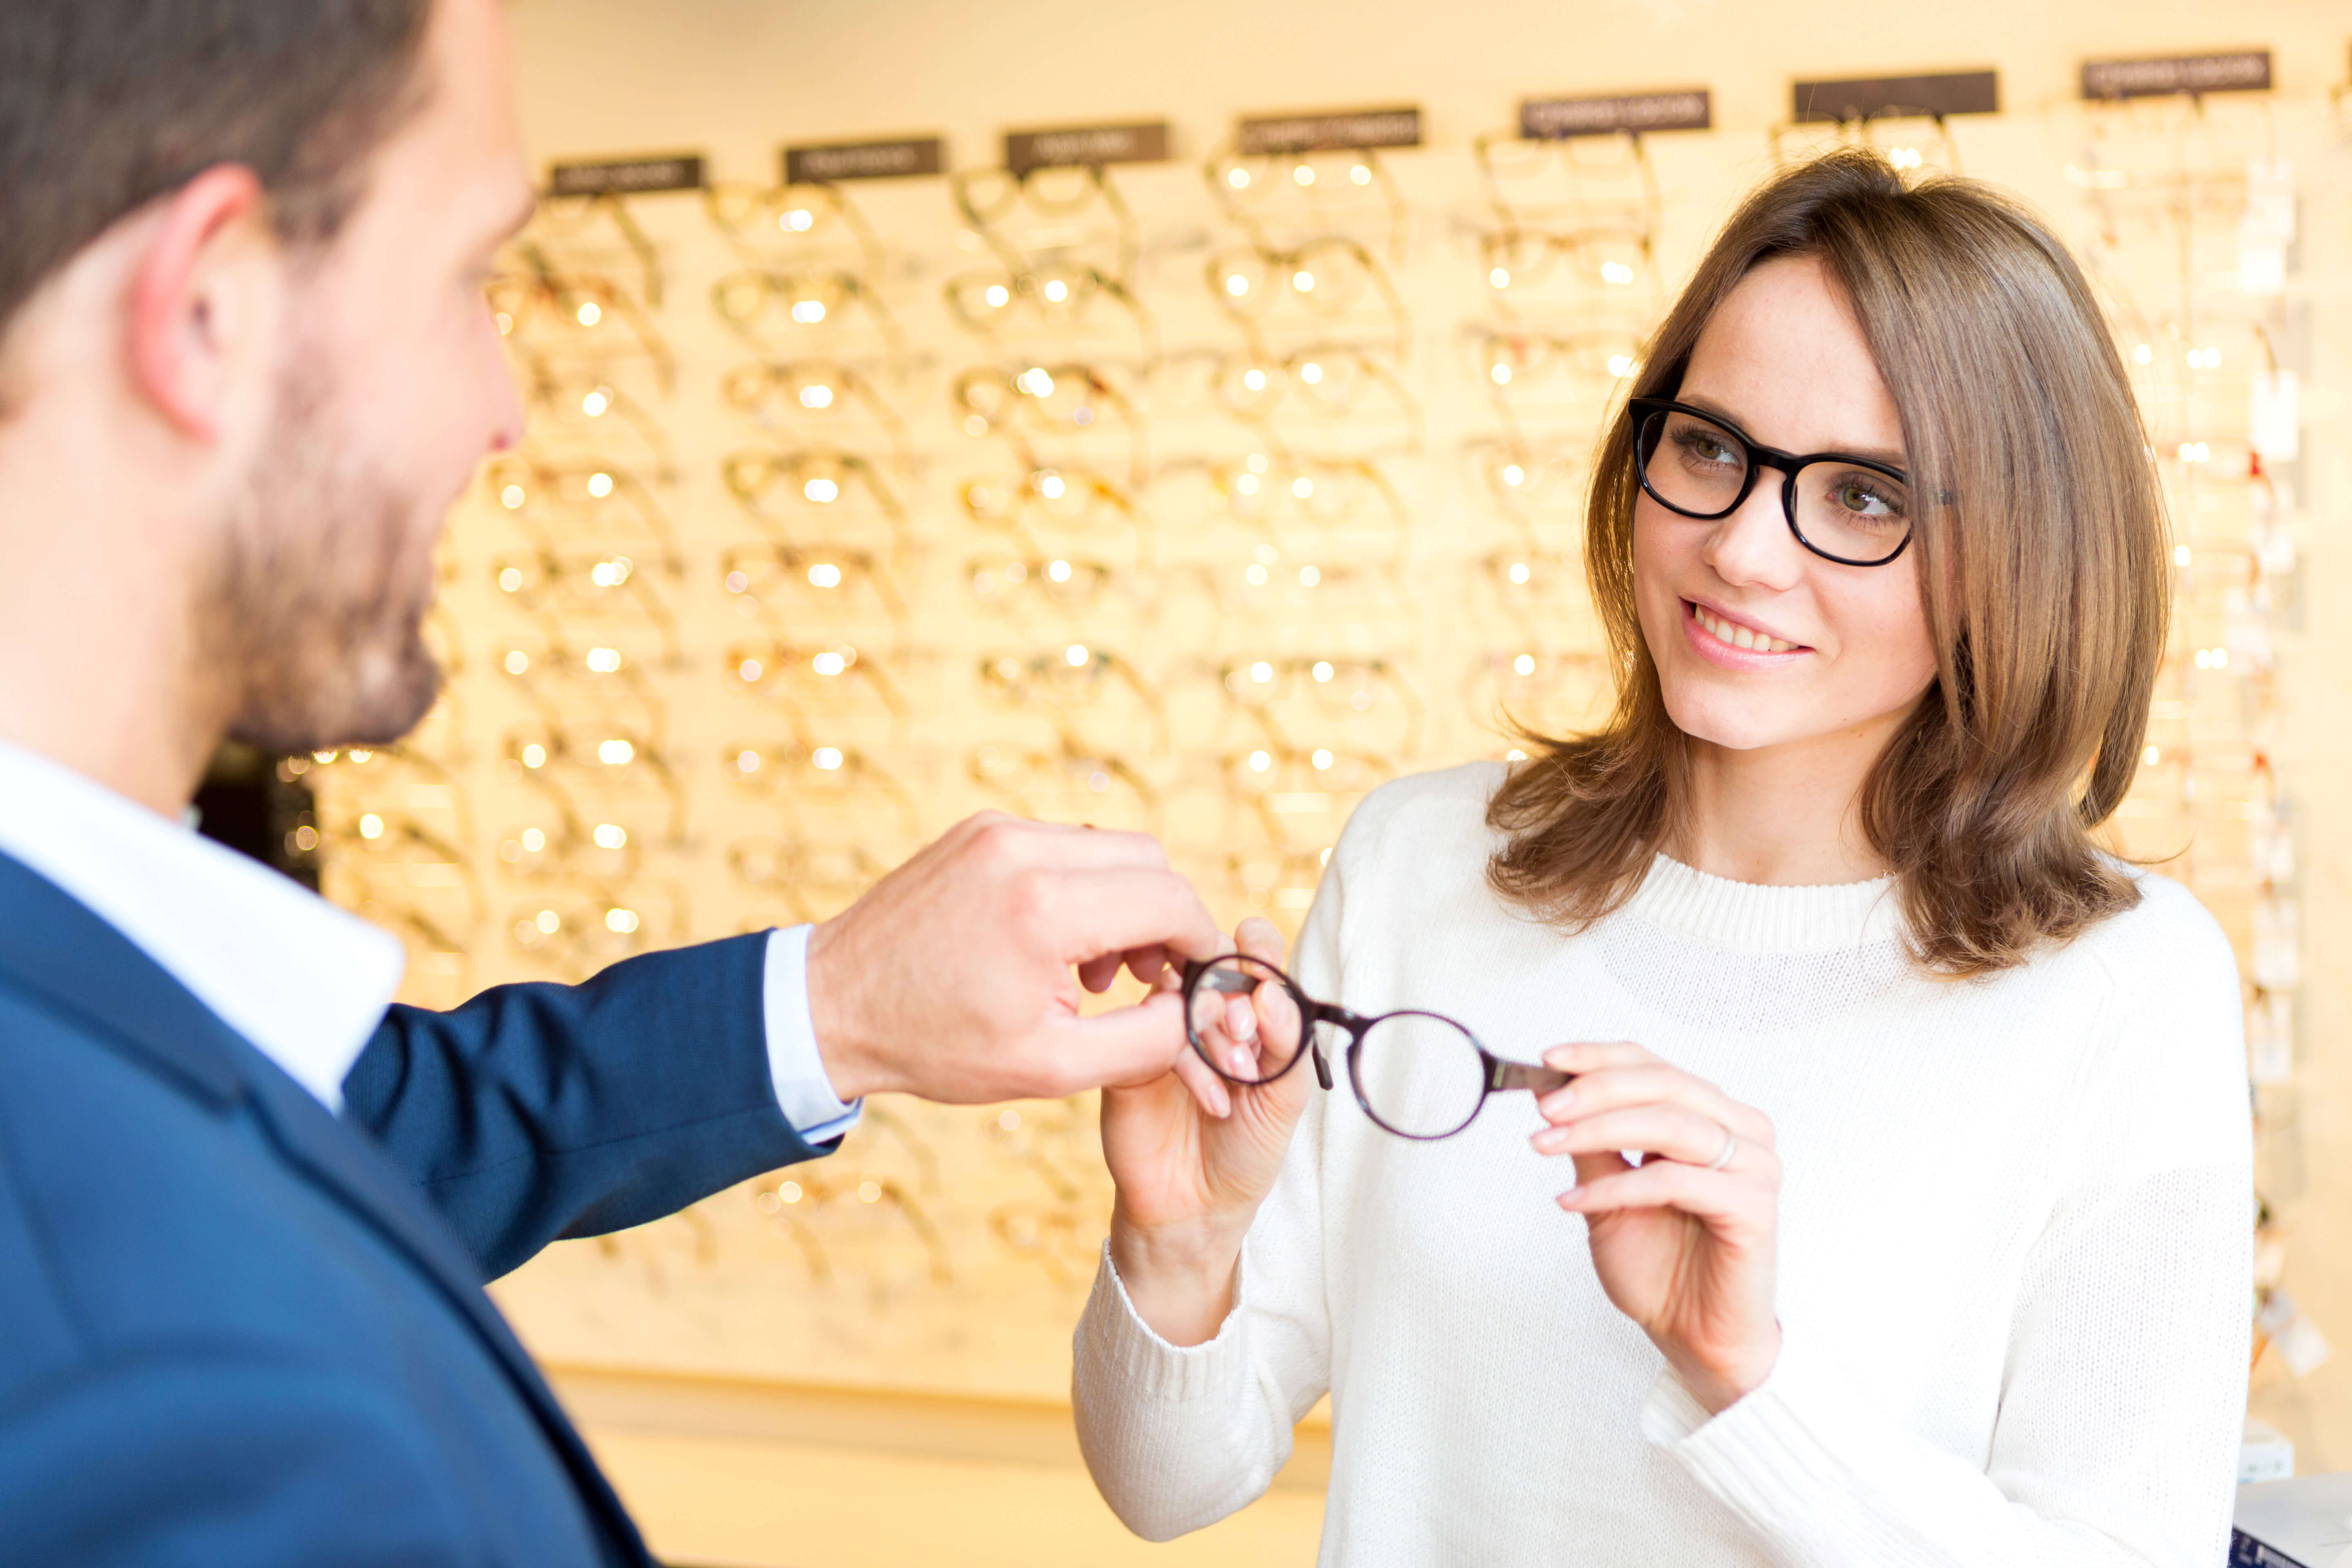 Bridge Vision is a directed vision benefit program. We make it easy for our clients to provide high quality, affordable vision care to their members.